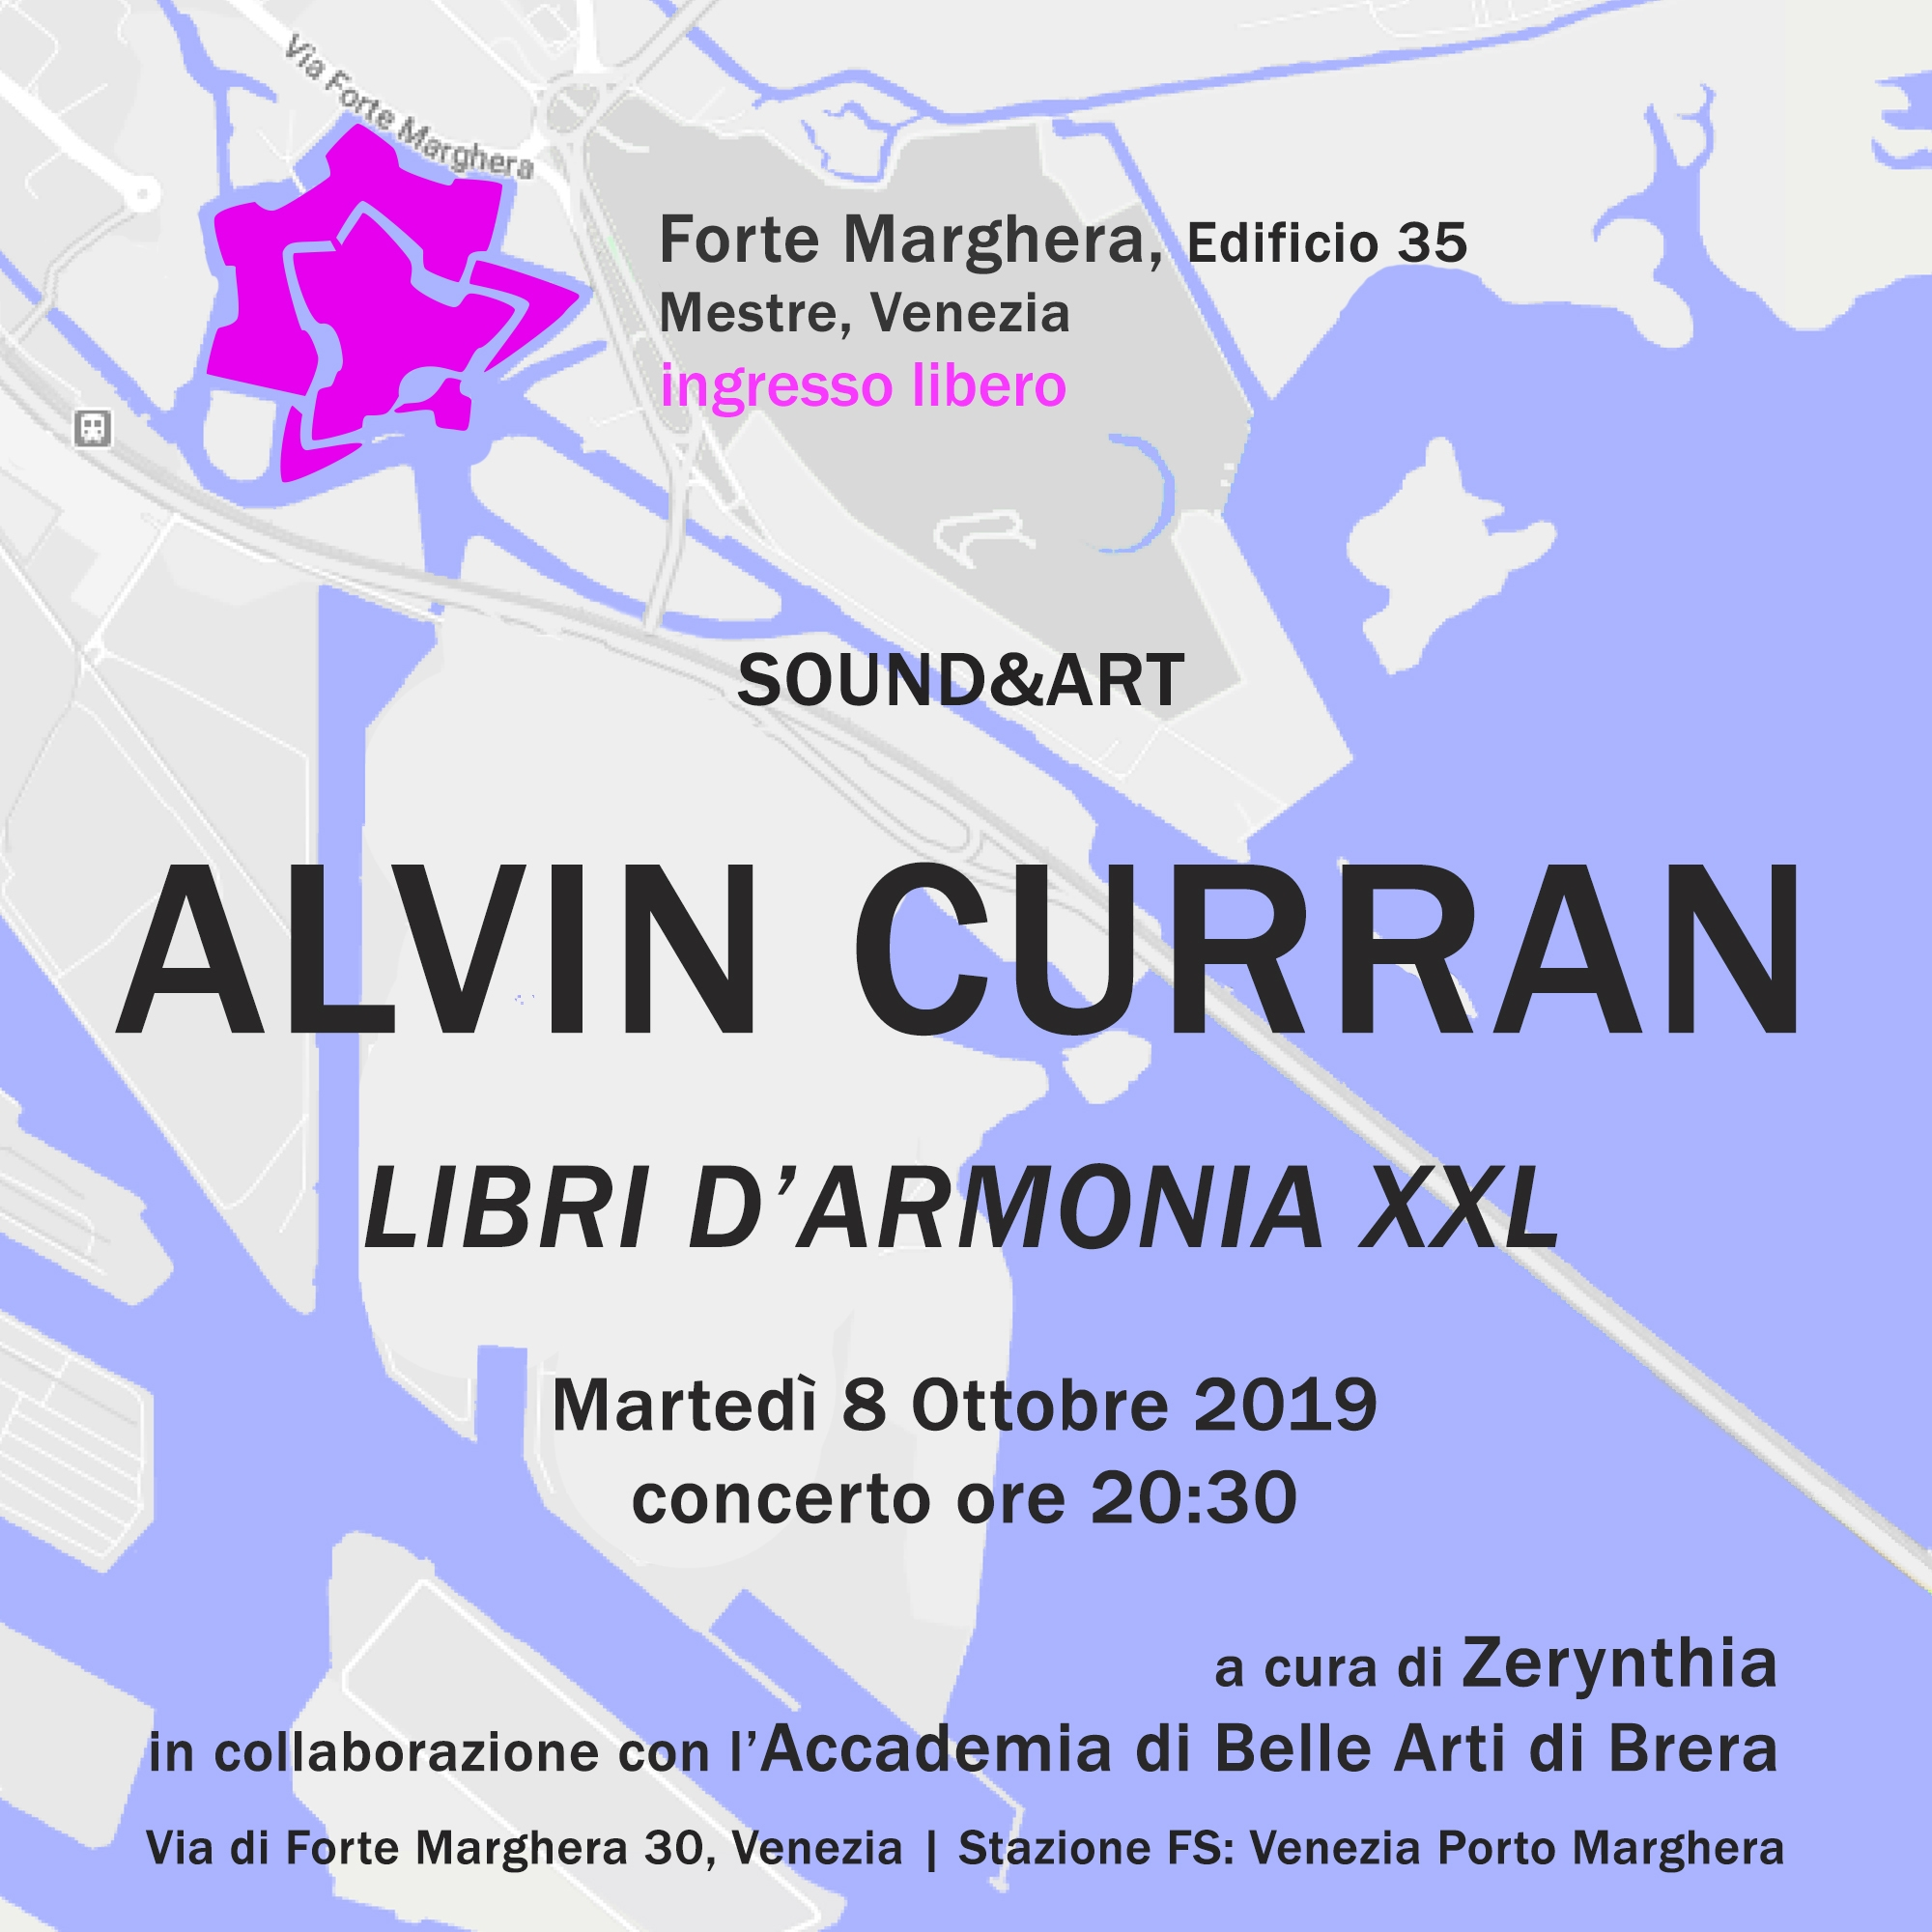 Invitation at Alvin Curran event